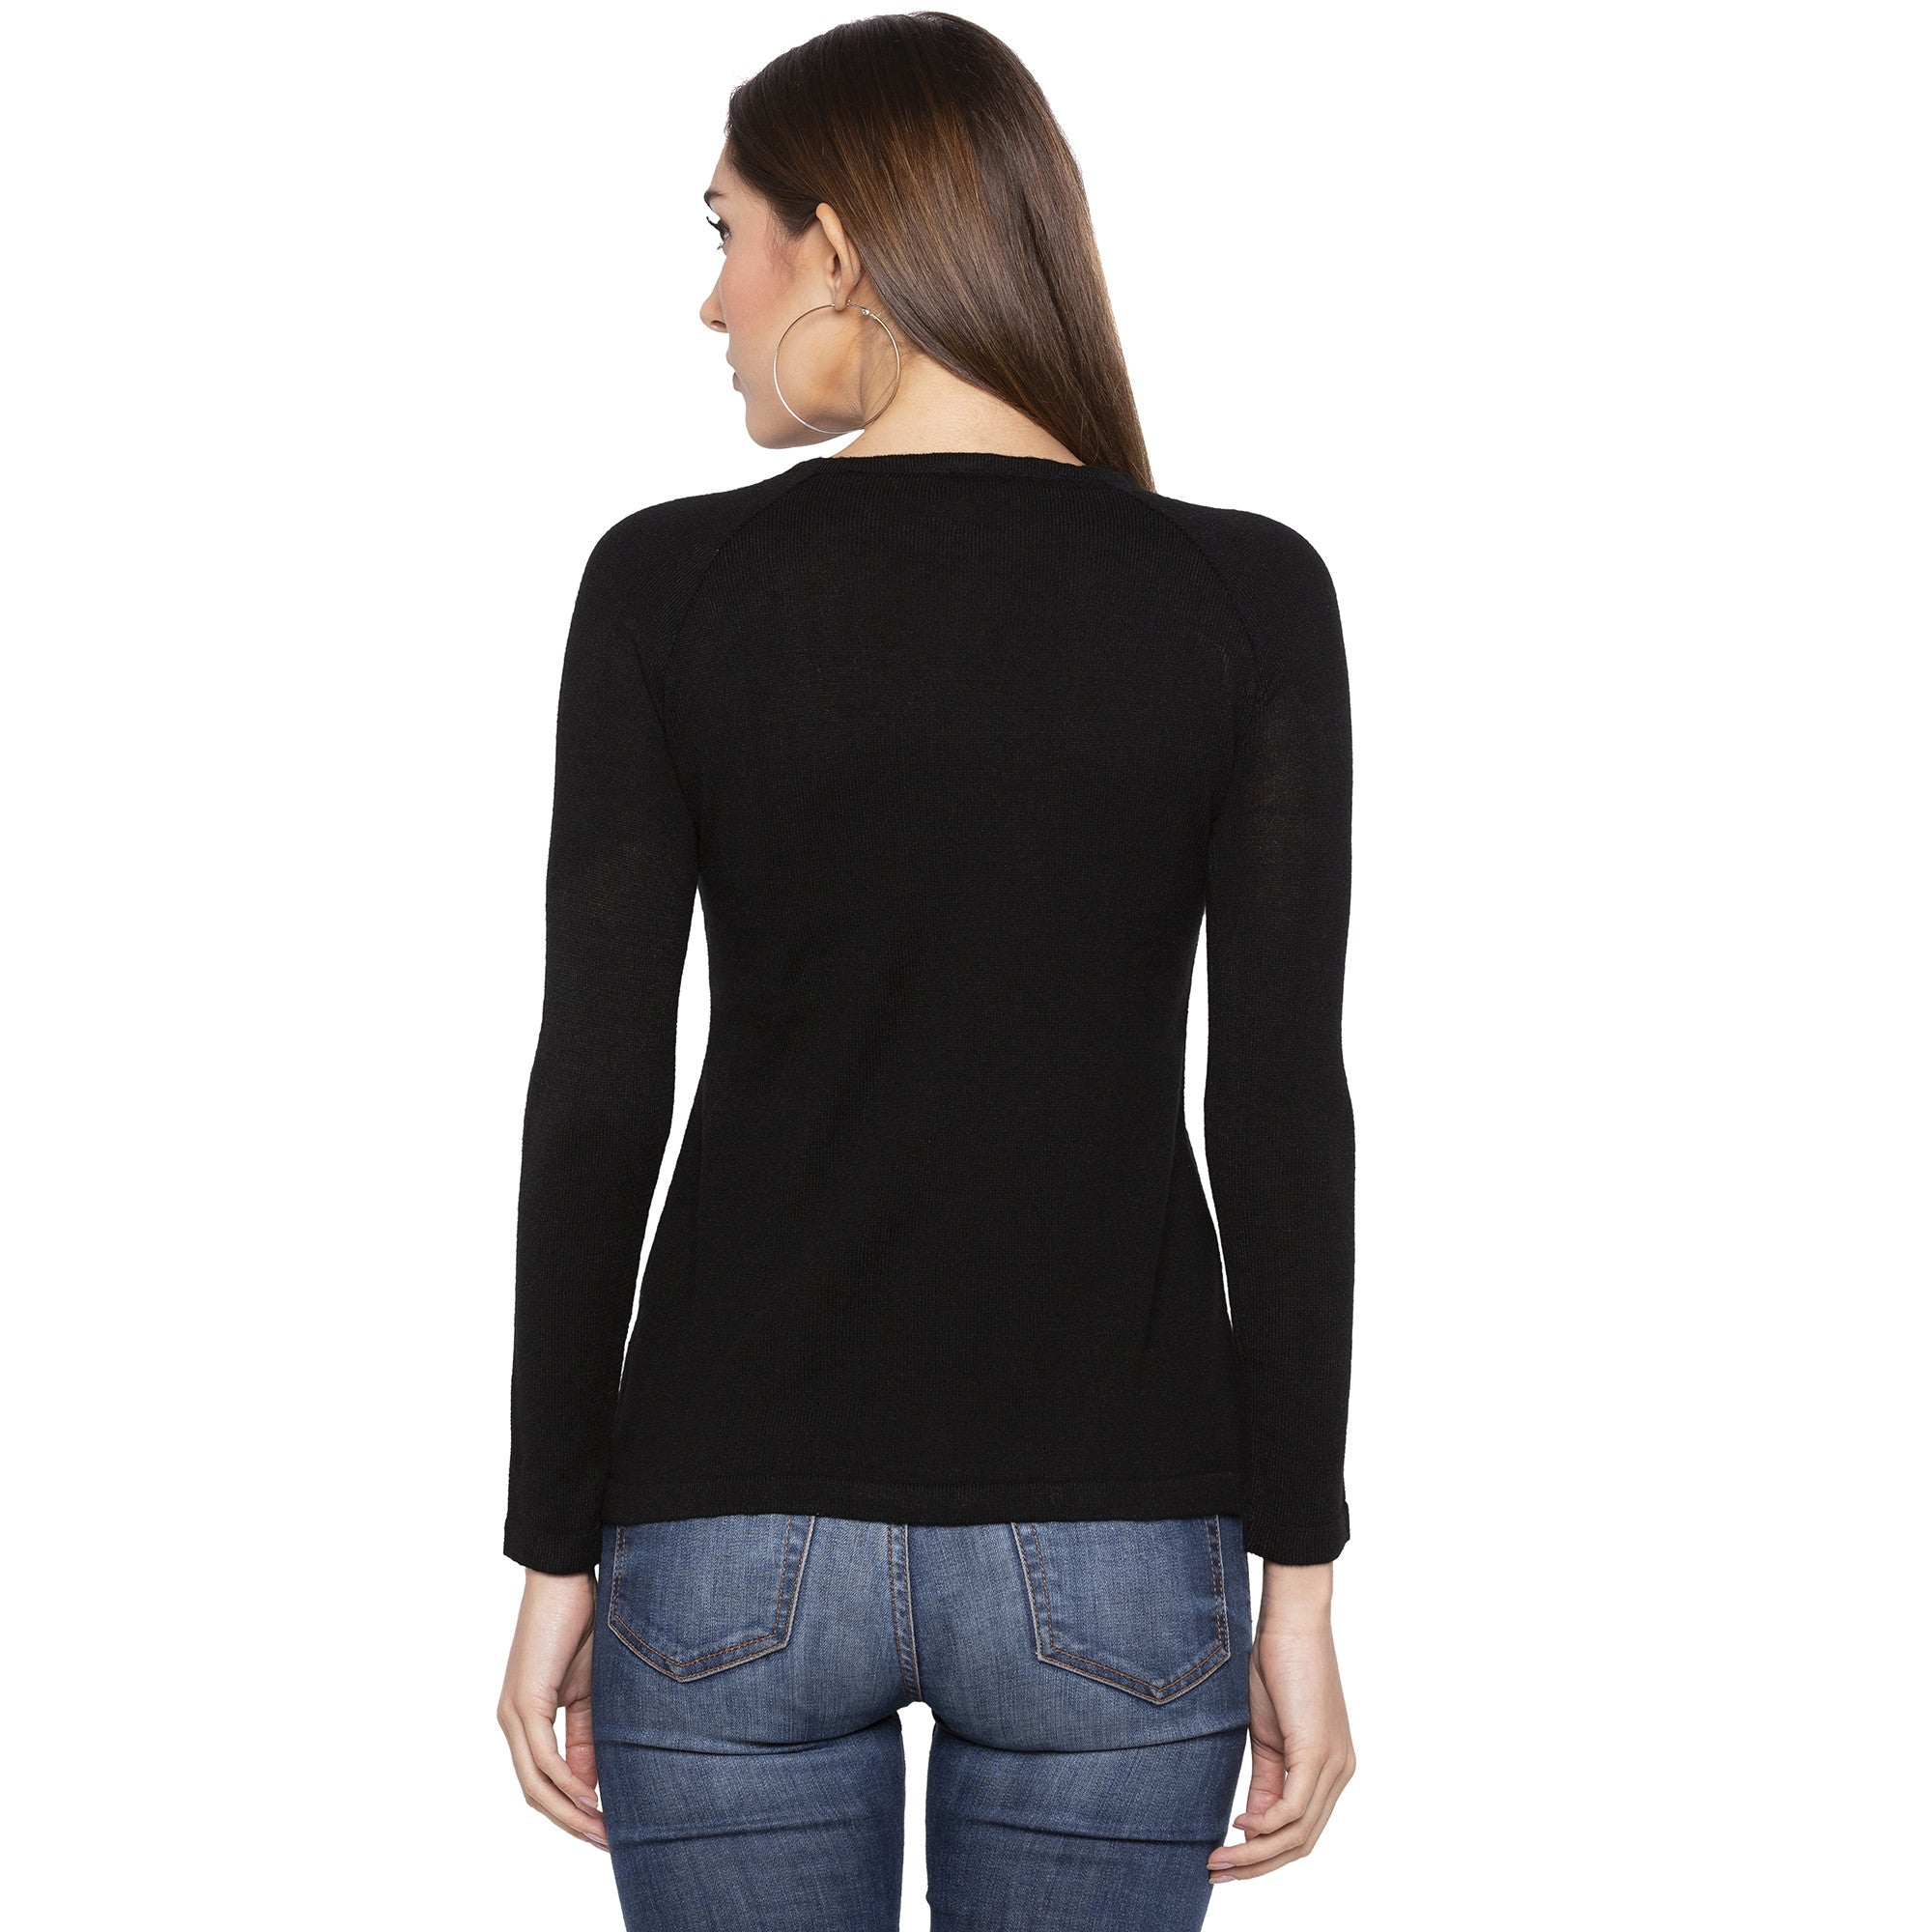 Casual Black Color Solid Slim Fit Tops-3